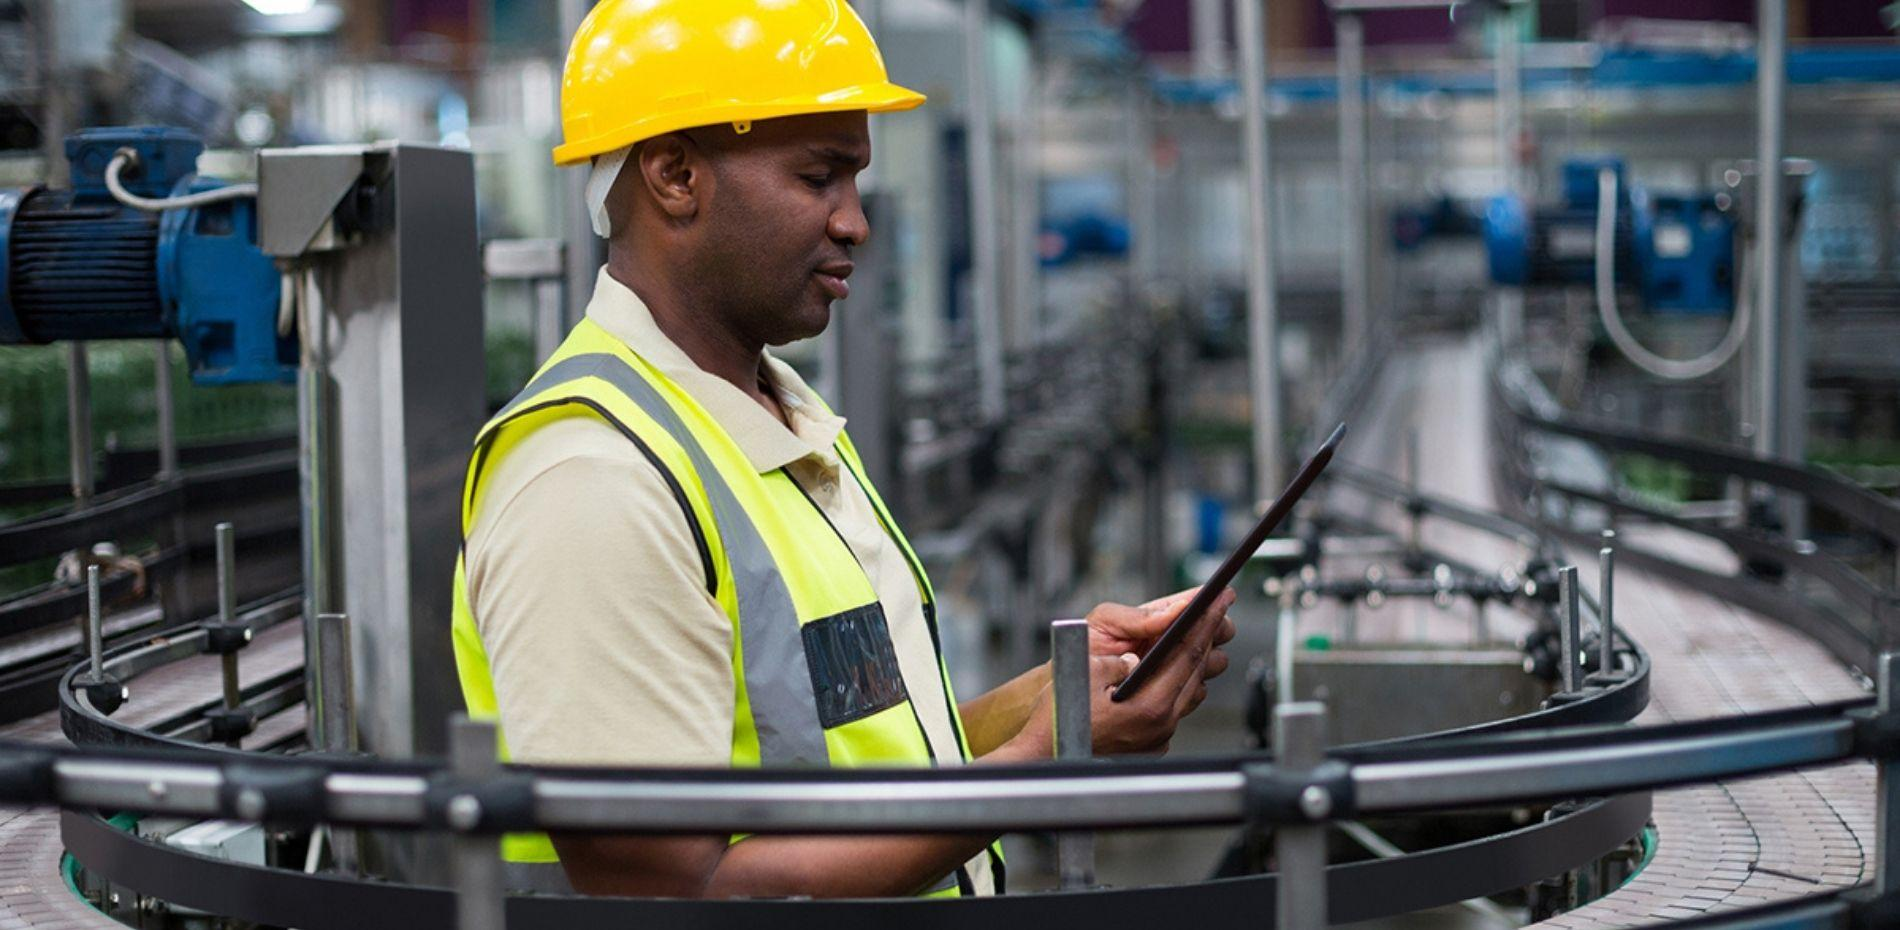 Manufacturing professional working on tablet in factory